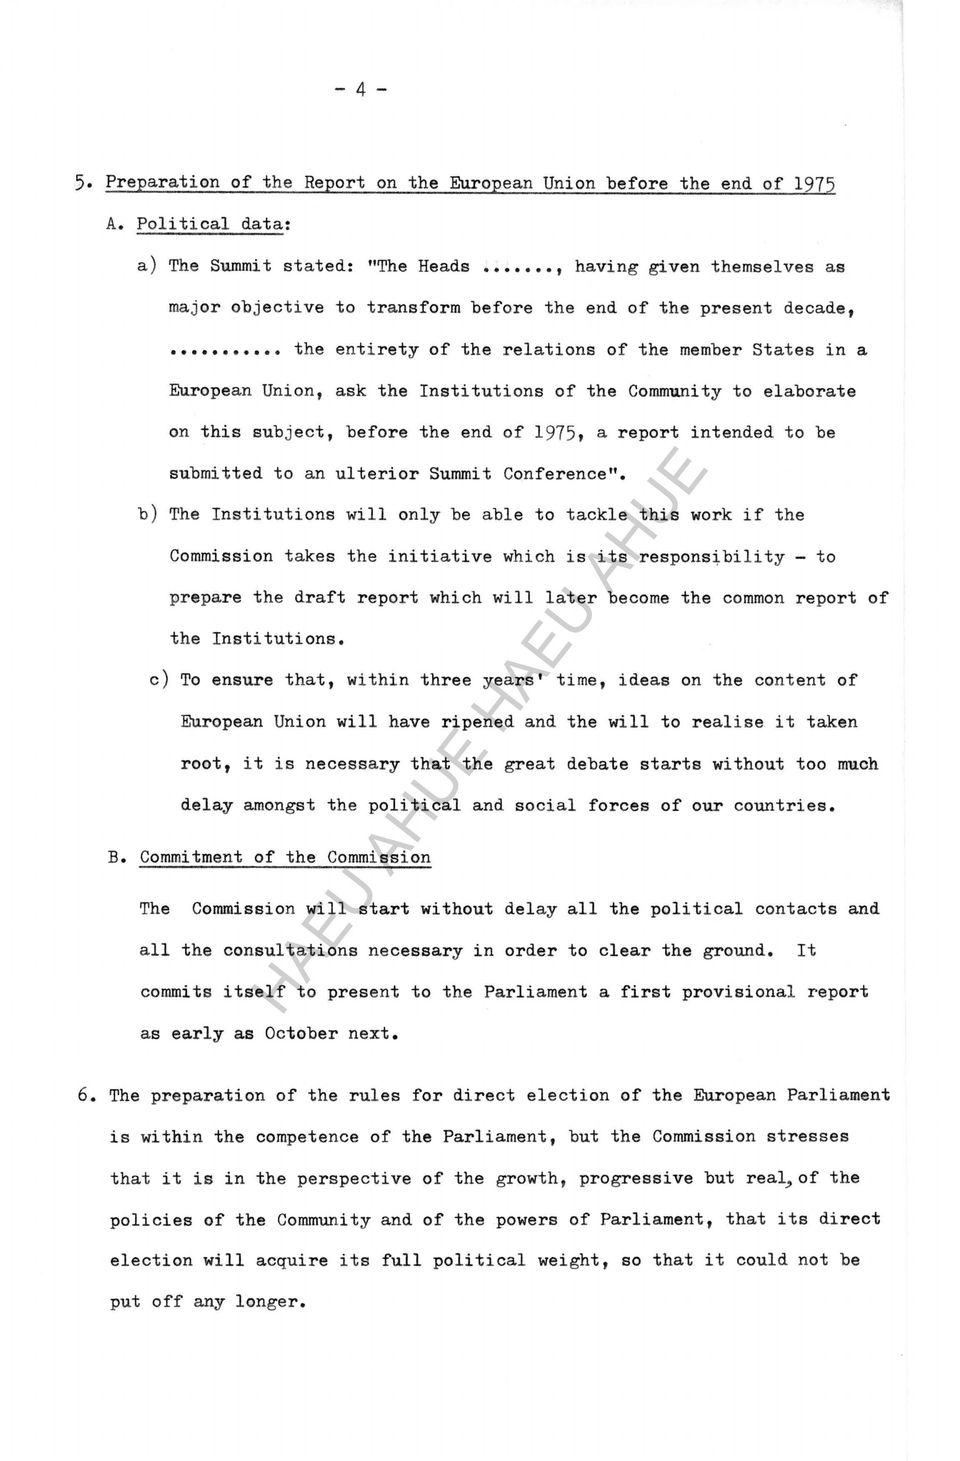 "Union, ask the Institutions of the Community to elaborate on this subject, before the end of 1975, a report intended to be submitted to an ulterior Summit Conference""."